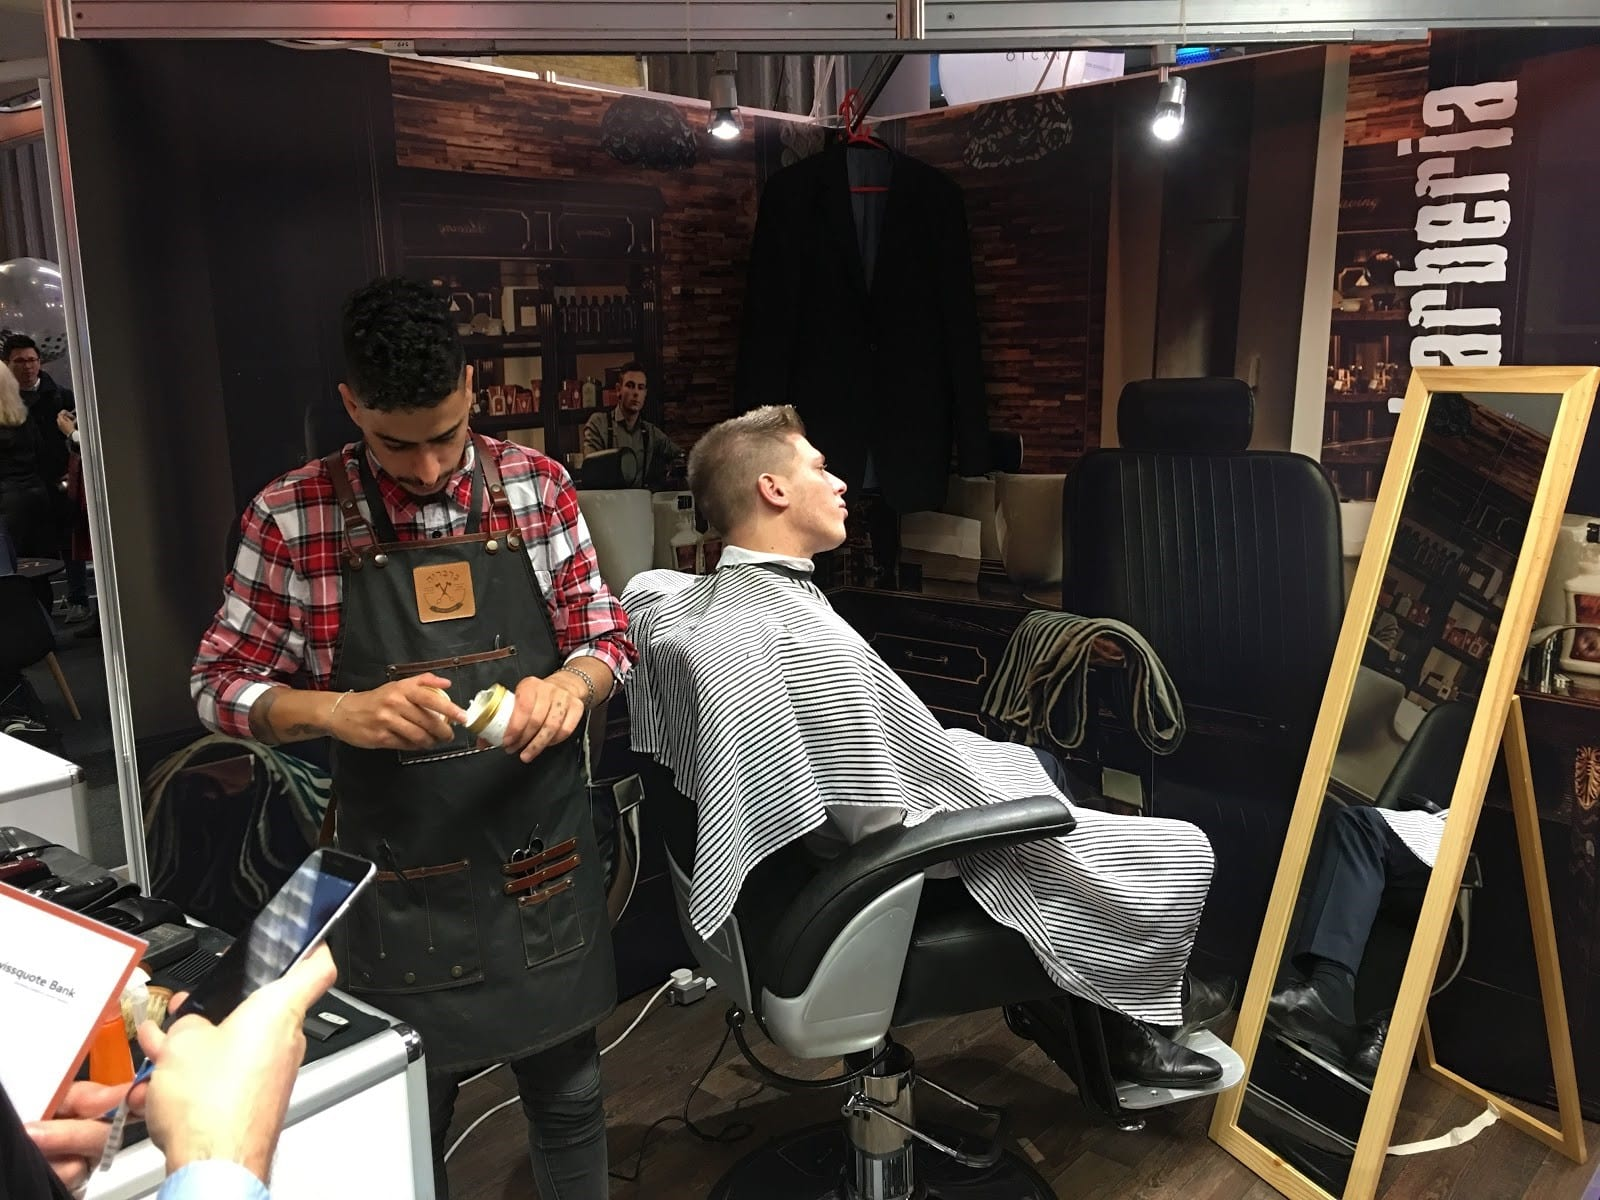 London Summit haircut